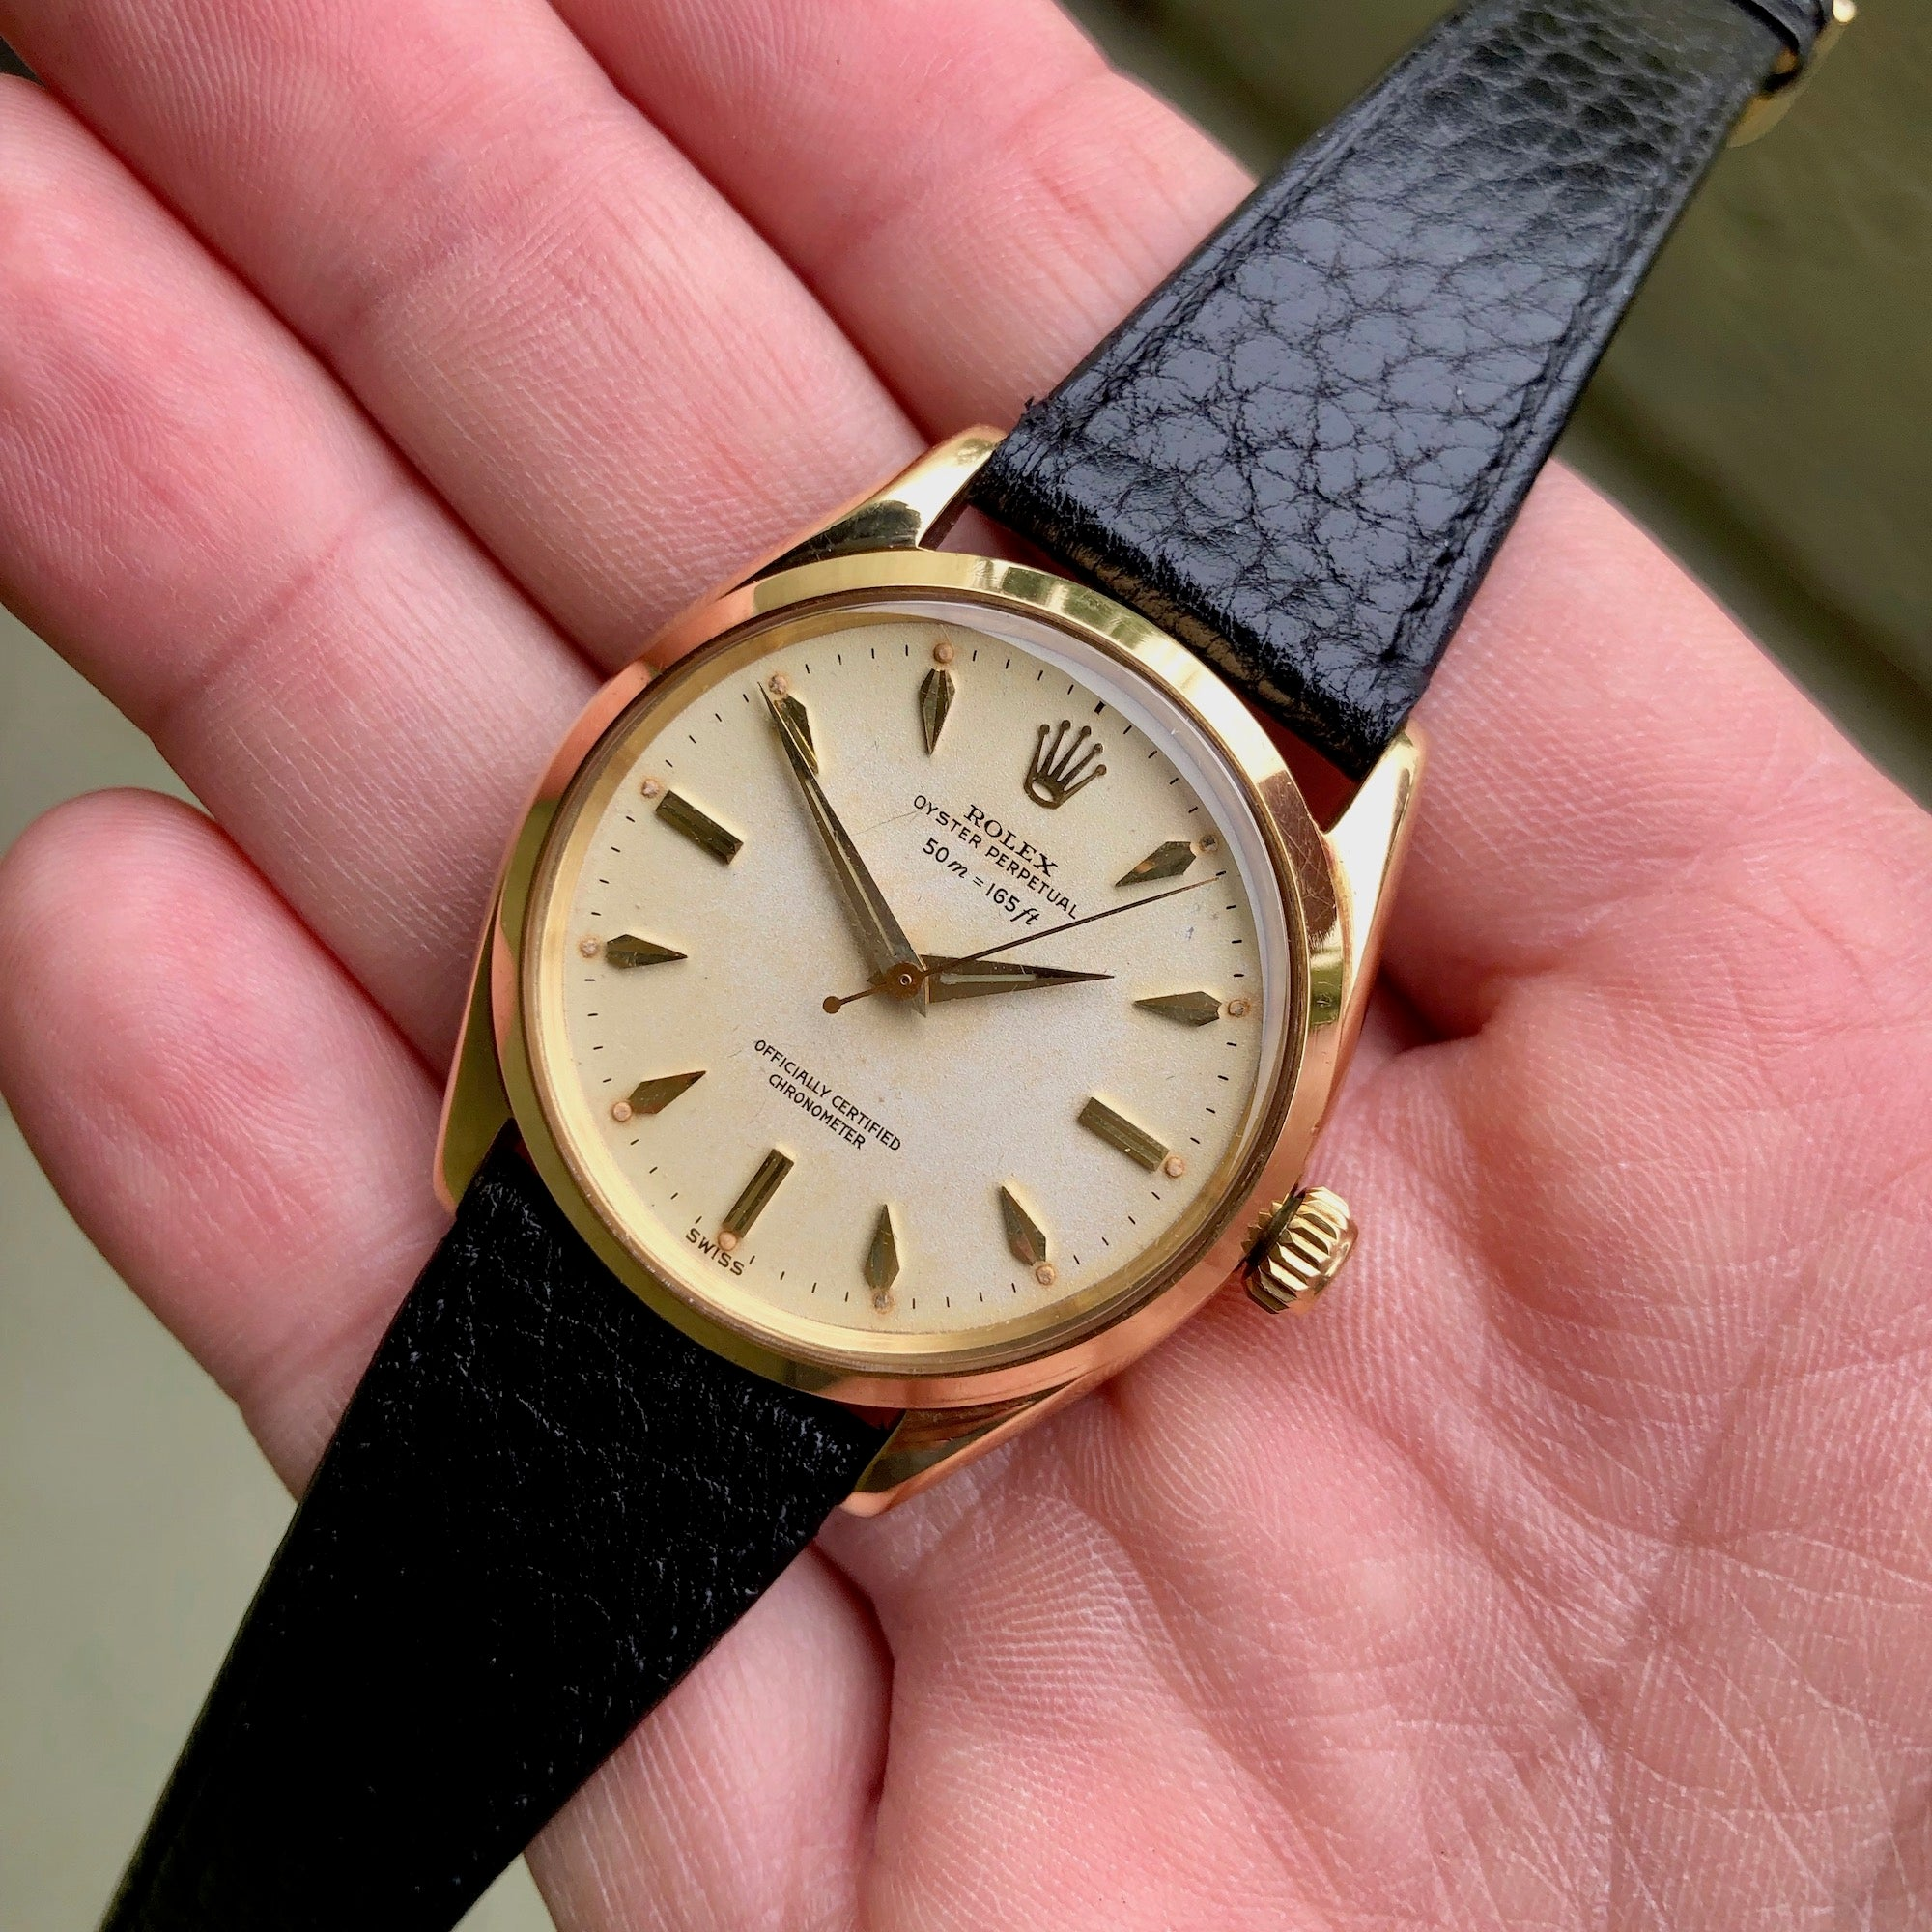 Vintage Rolex Oyster Perpetual 6564 50m = 165ft 18K Yellow Automatic Wristwatch Circa 1954 - Hashtag Watch Company